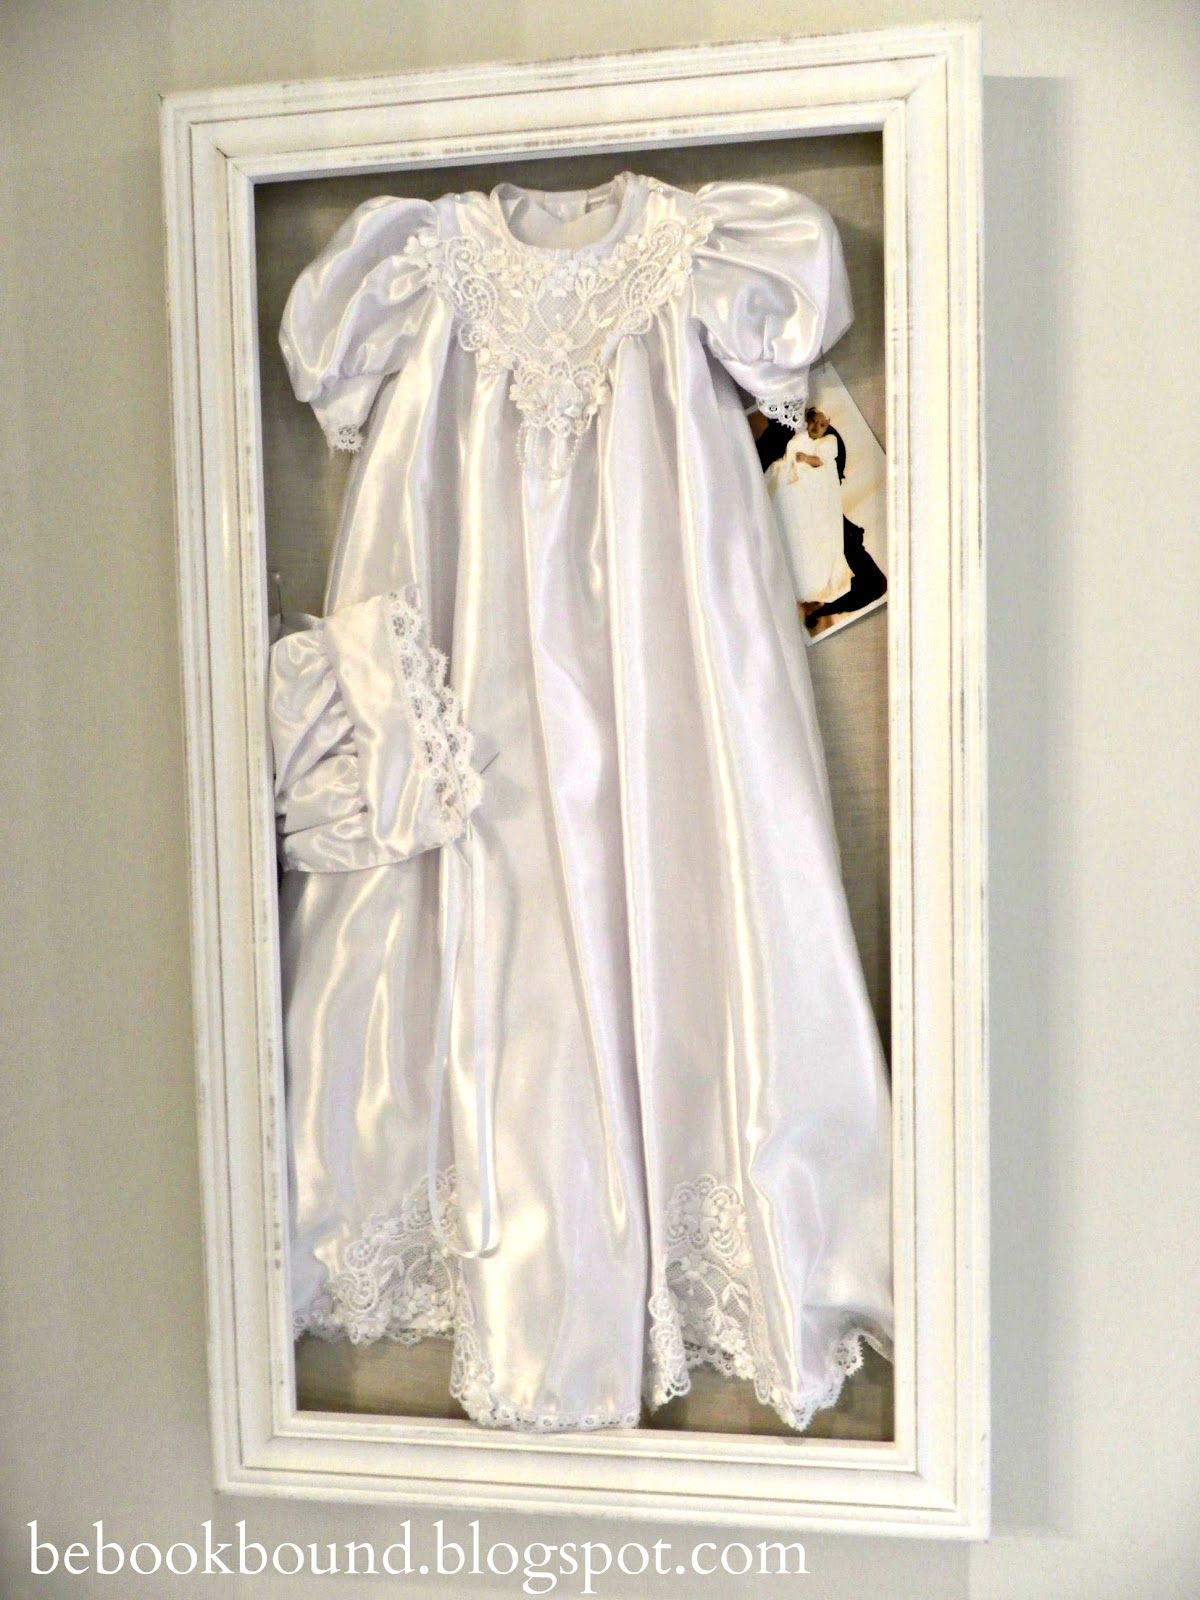 frame my littles girls christening gown and cap with a photo of her wearing it to hang on the wall for sweet sentimental art also a good way to preserve